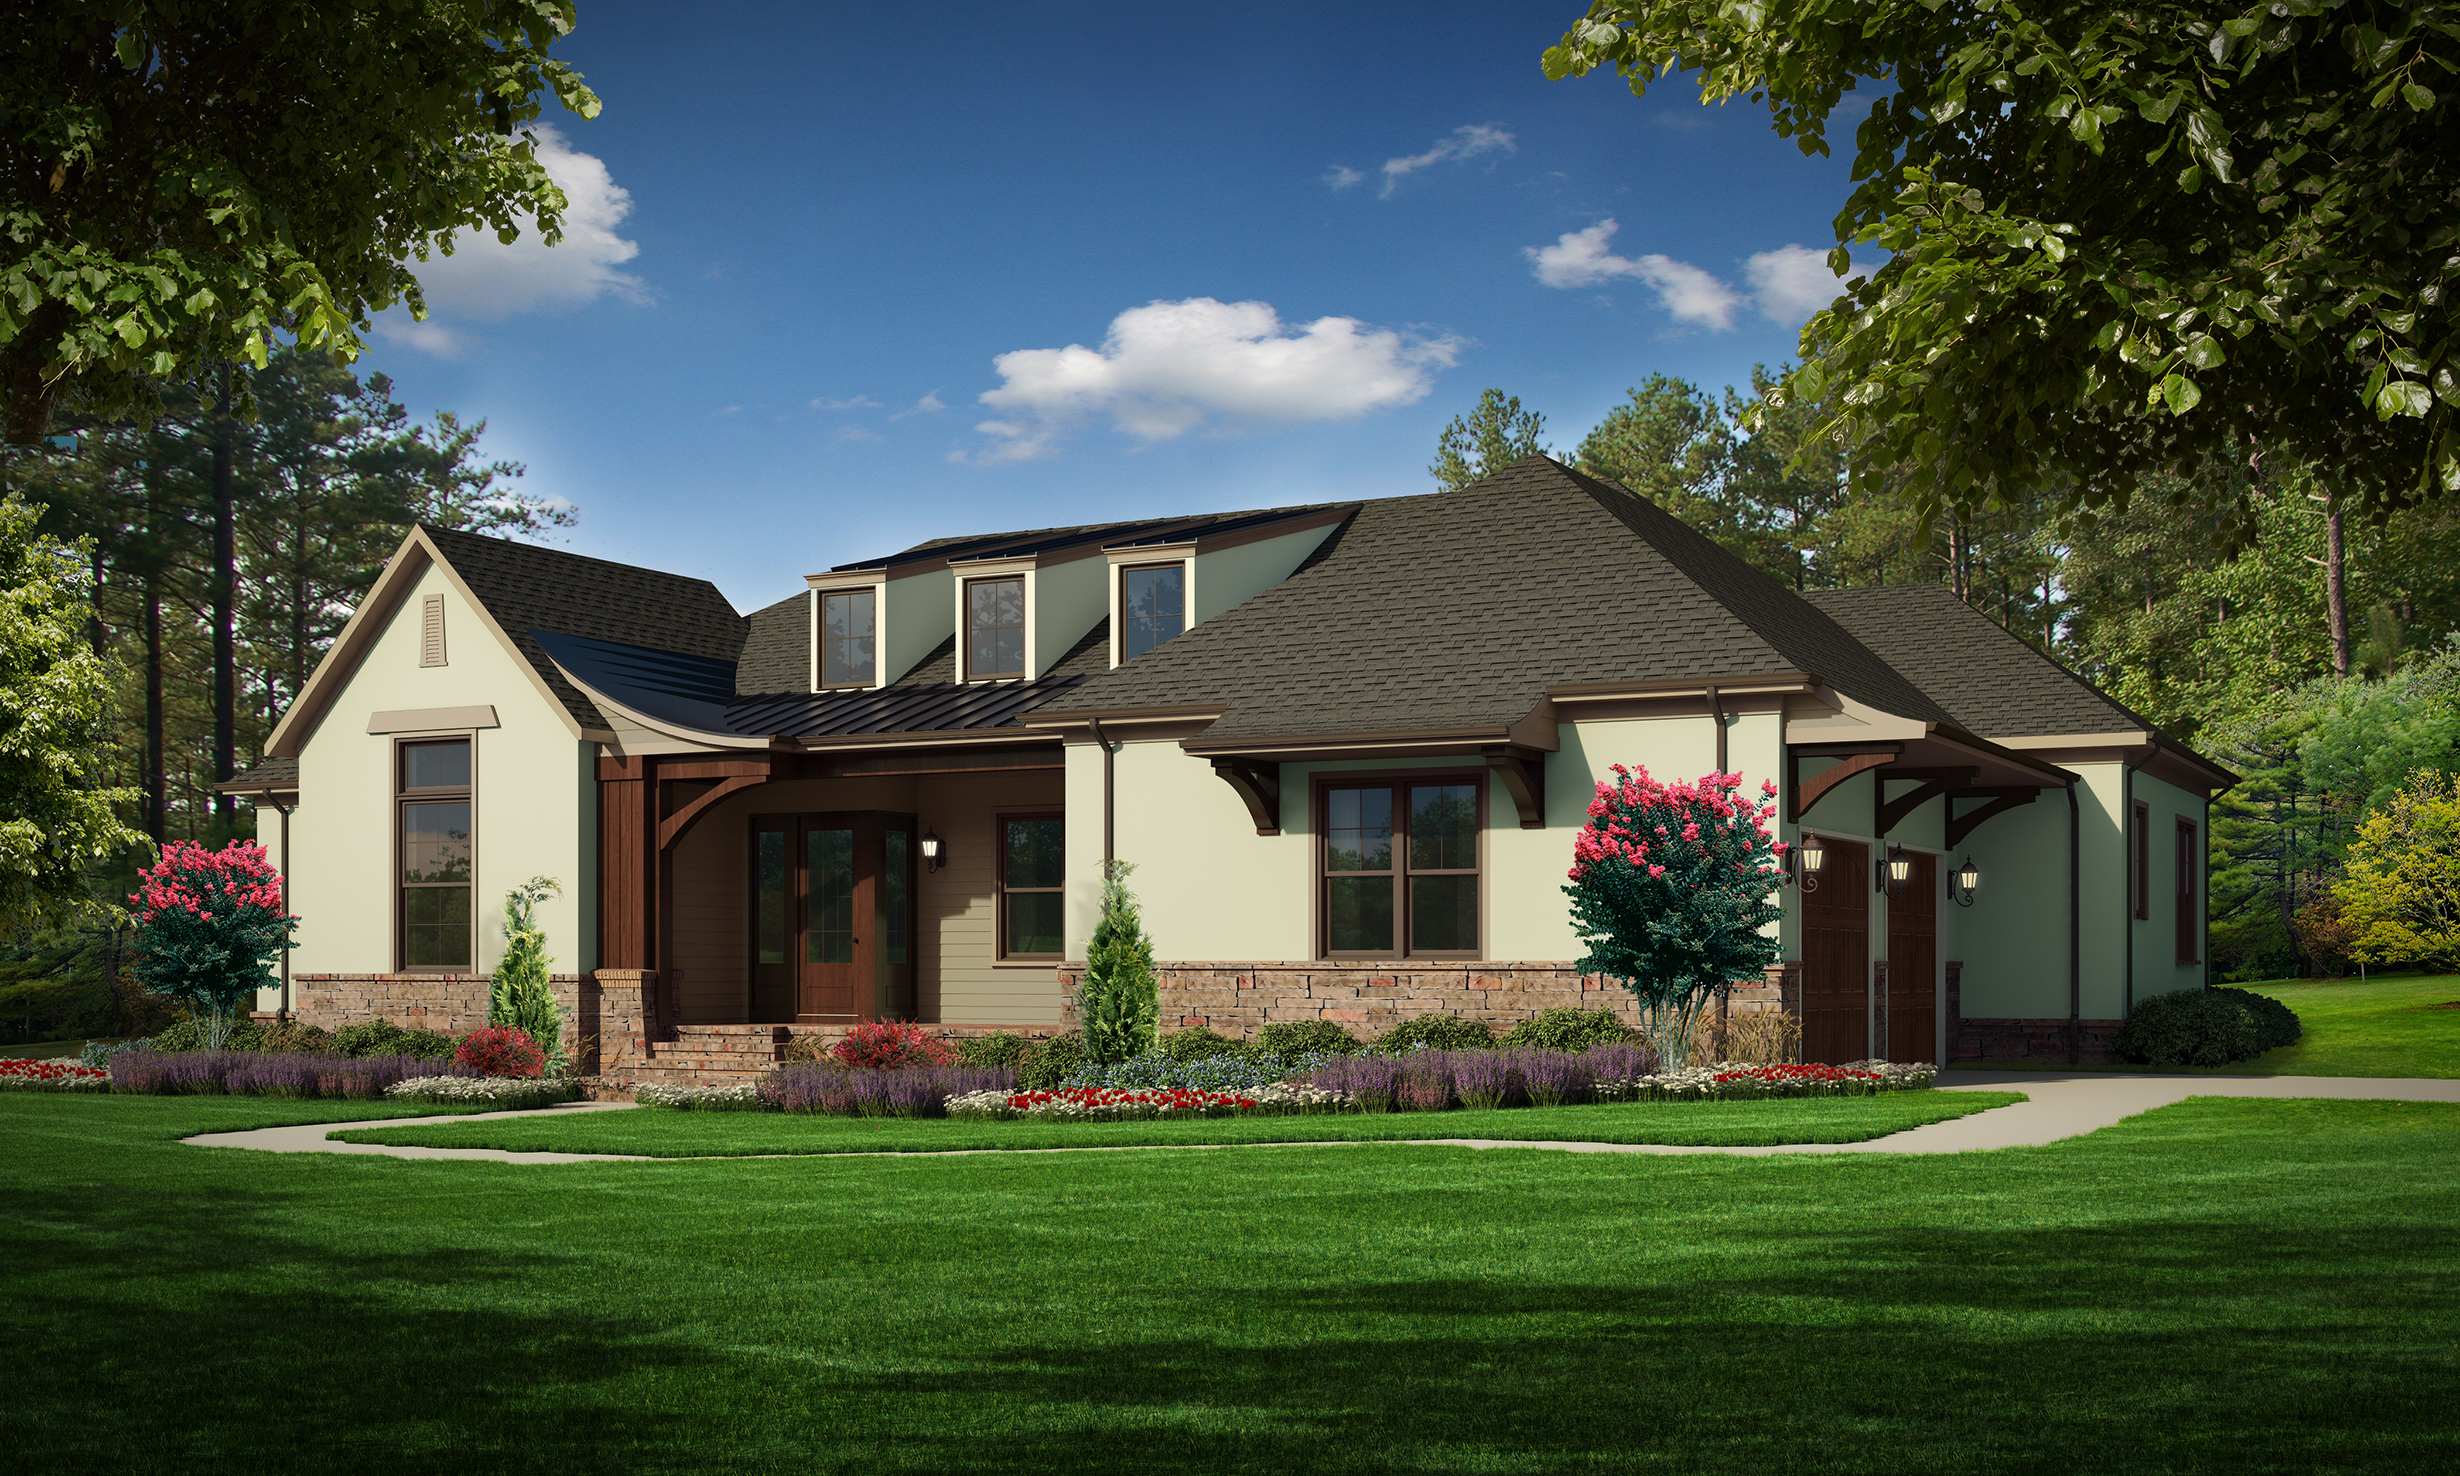 """A Option (Stucco)  Total SF 3669 sq. ft. Total SF heated 2514 sq. ft. Bedrooms 3 Bathrooms 3 Width: 74' Depth: 62'-9"""" Attached two-car garage Porches: Covered front porch, Covered back porch"""